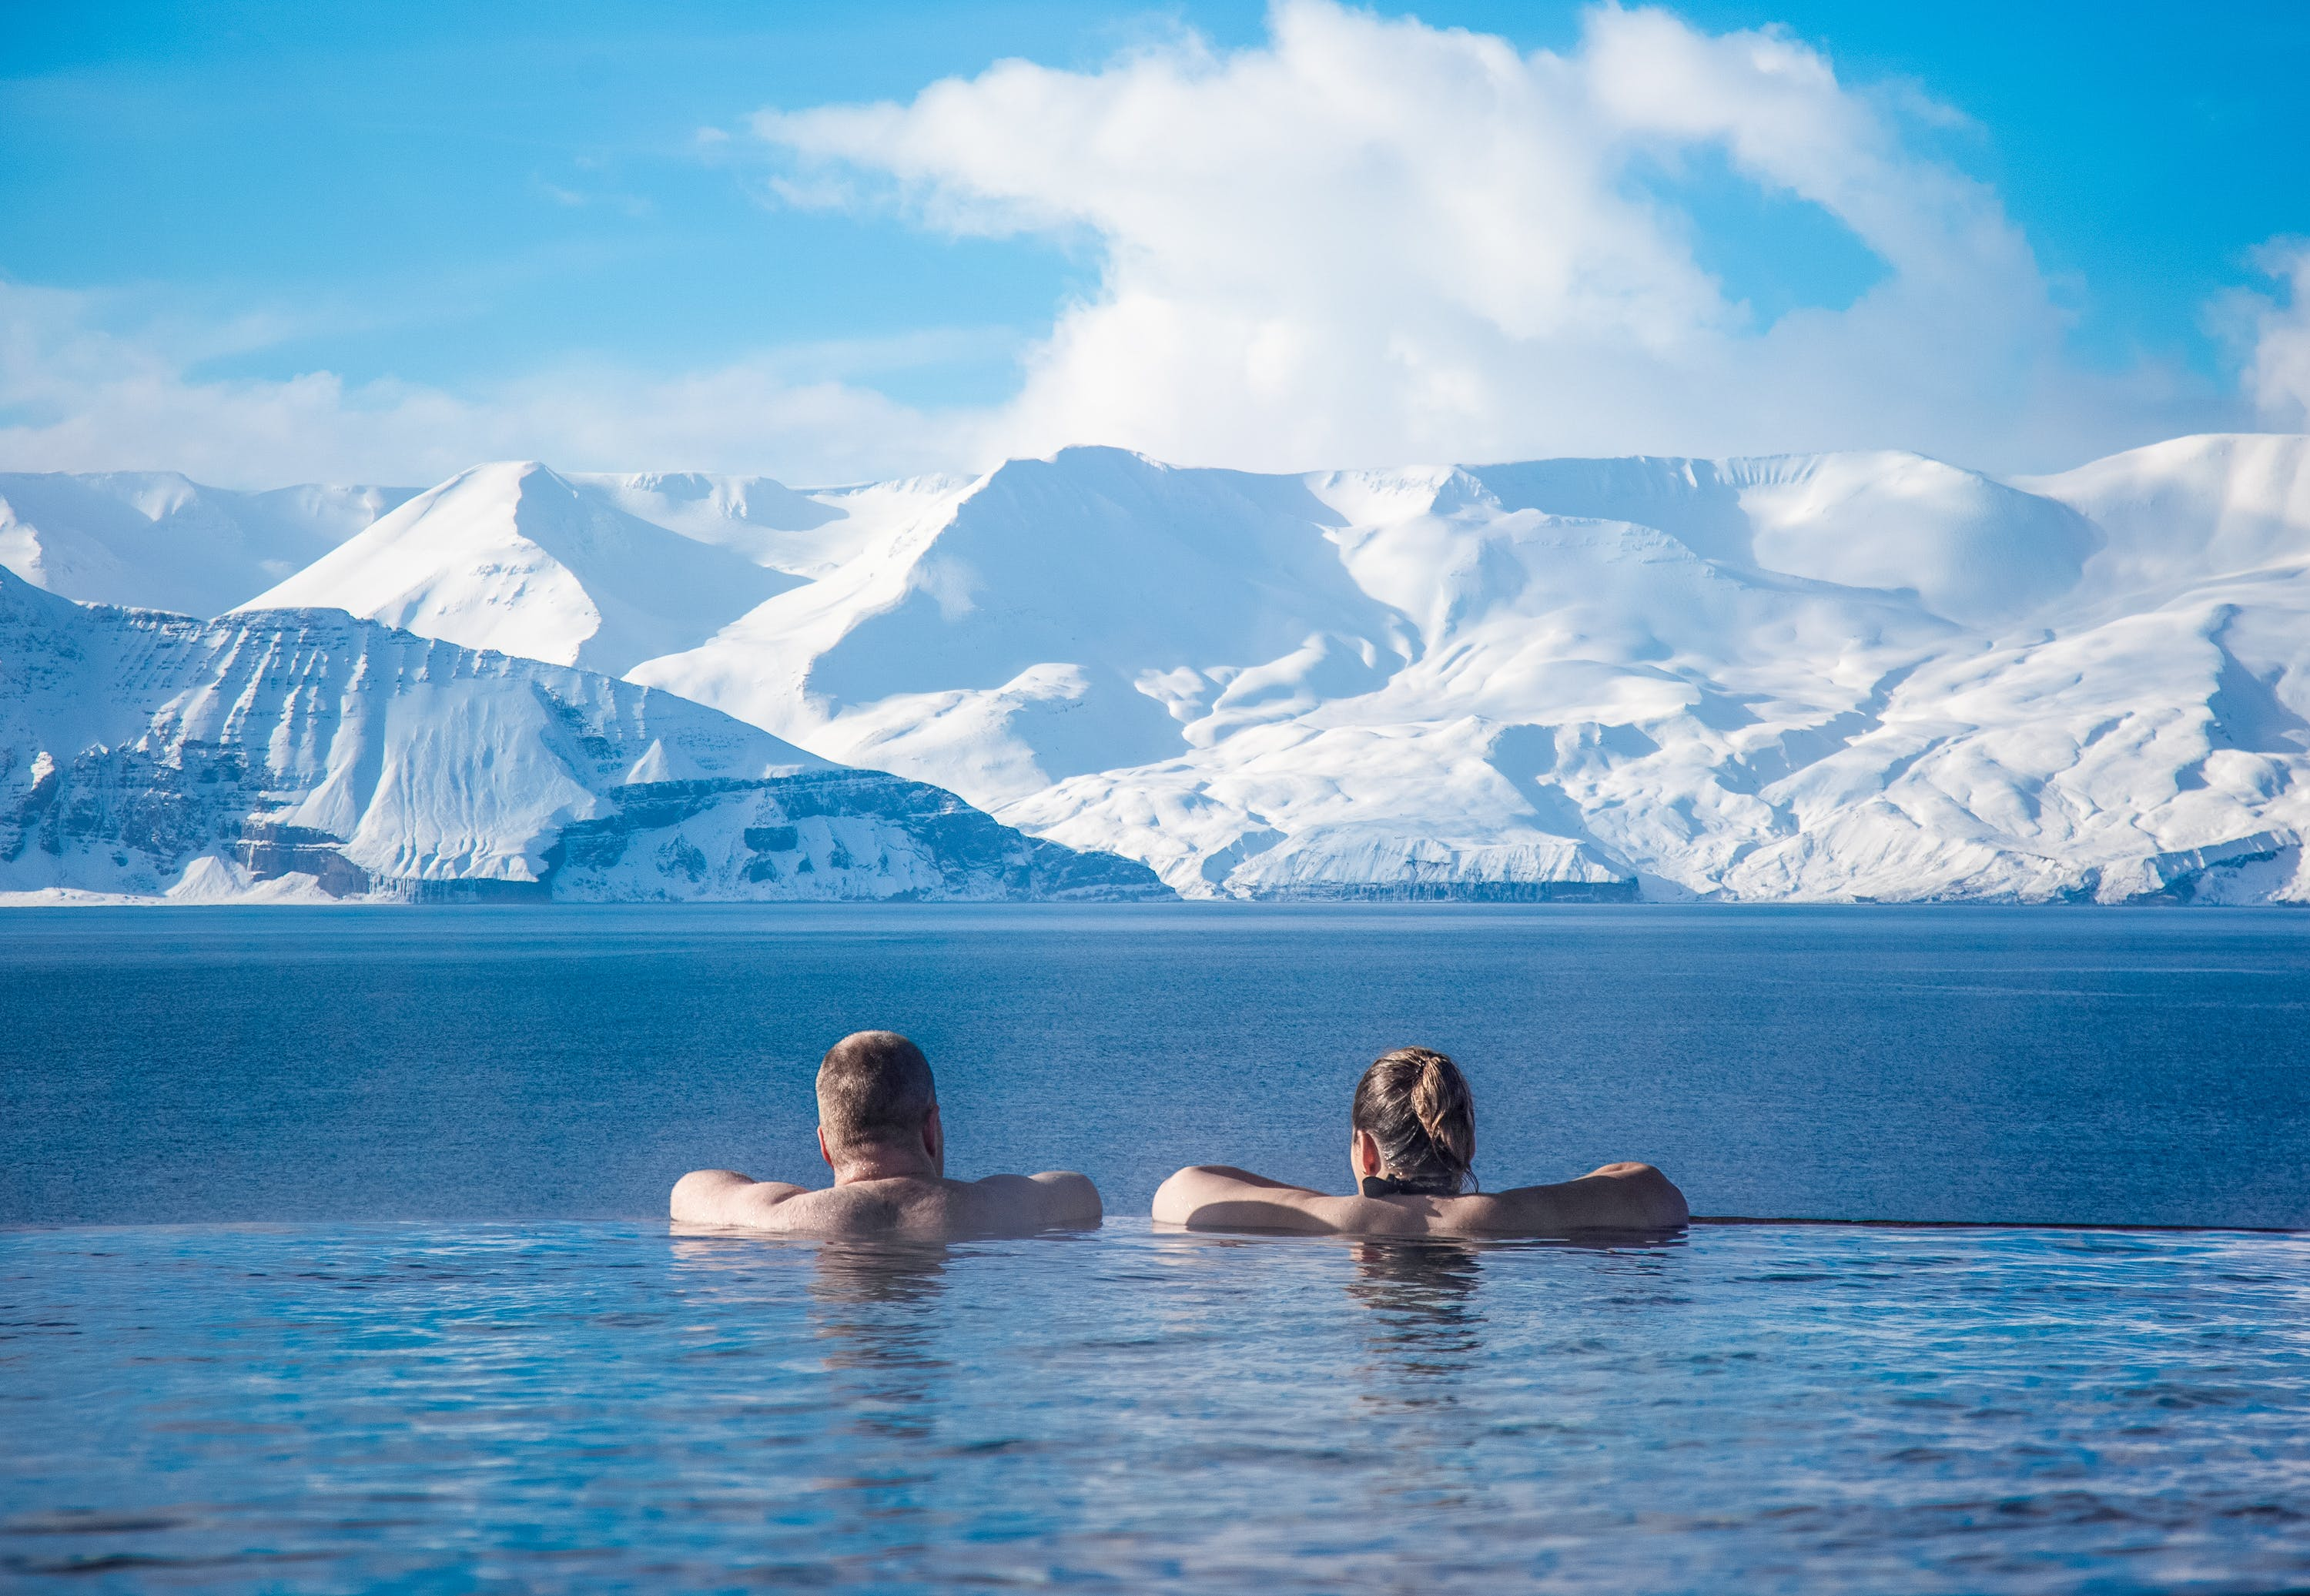 People bathing in Geosea with a mountain view